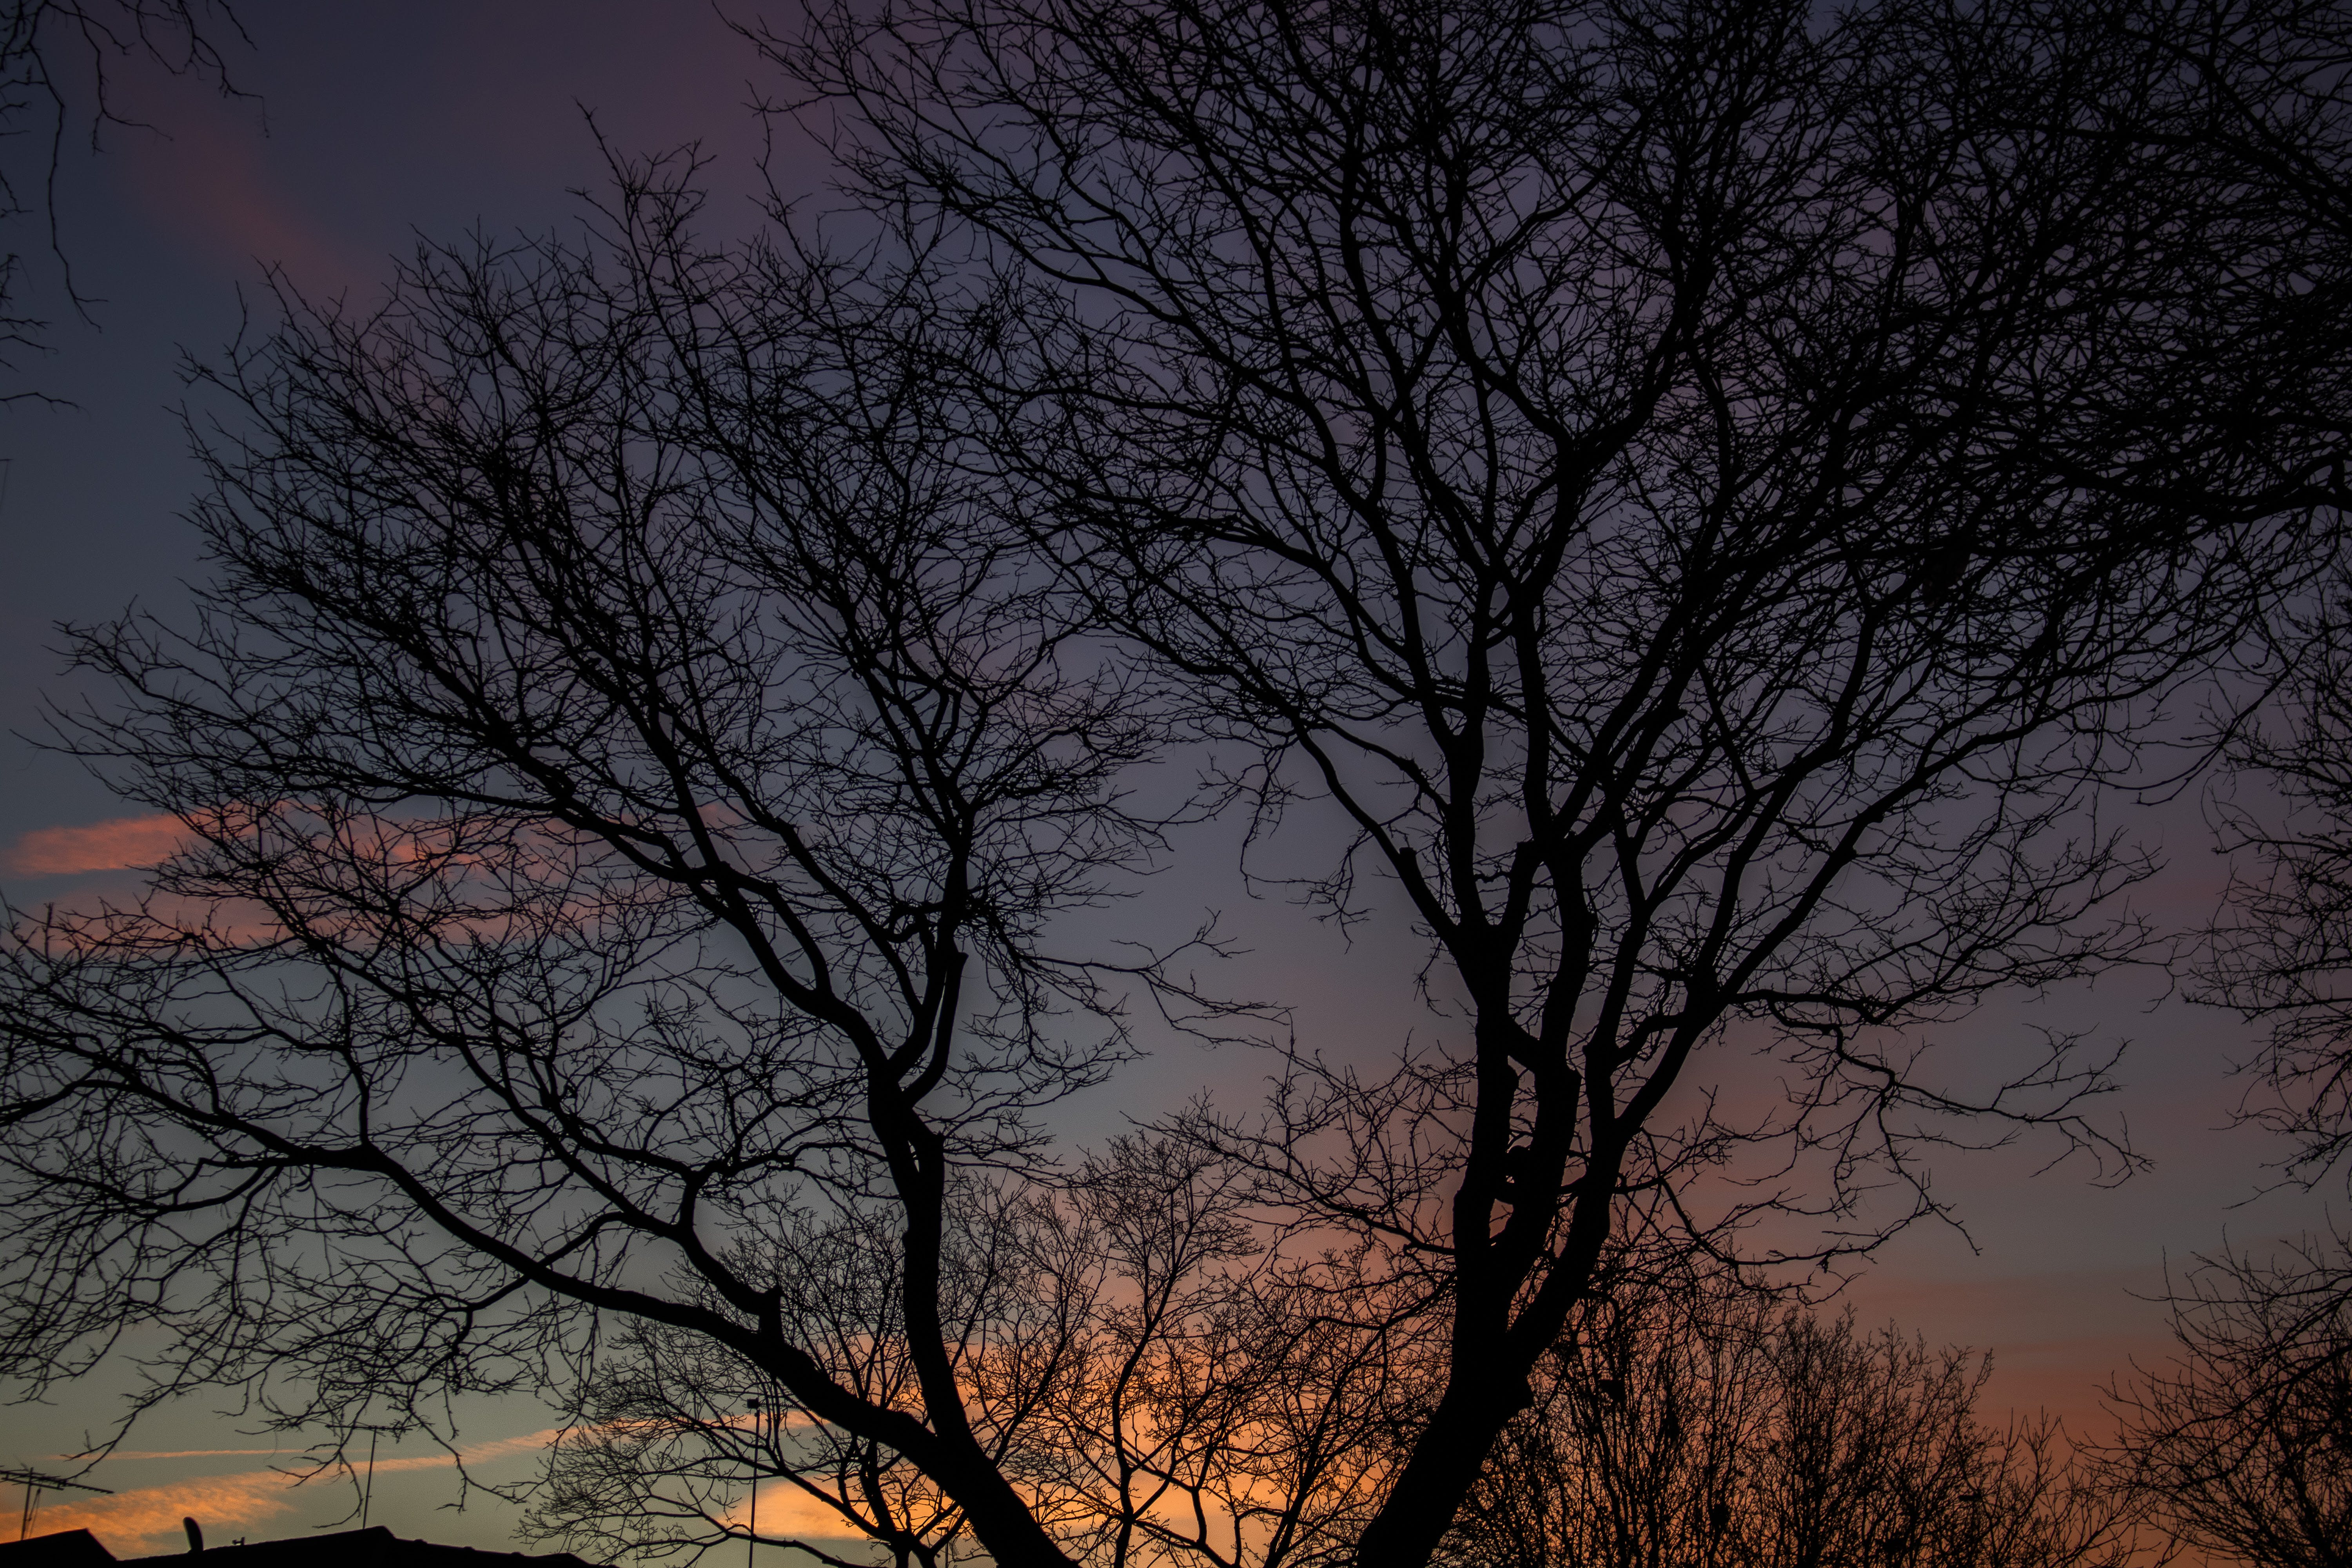 Silhouette Photo Of Bare Tree